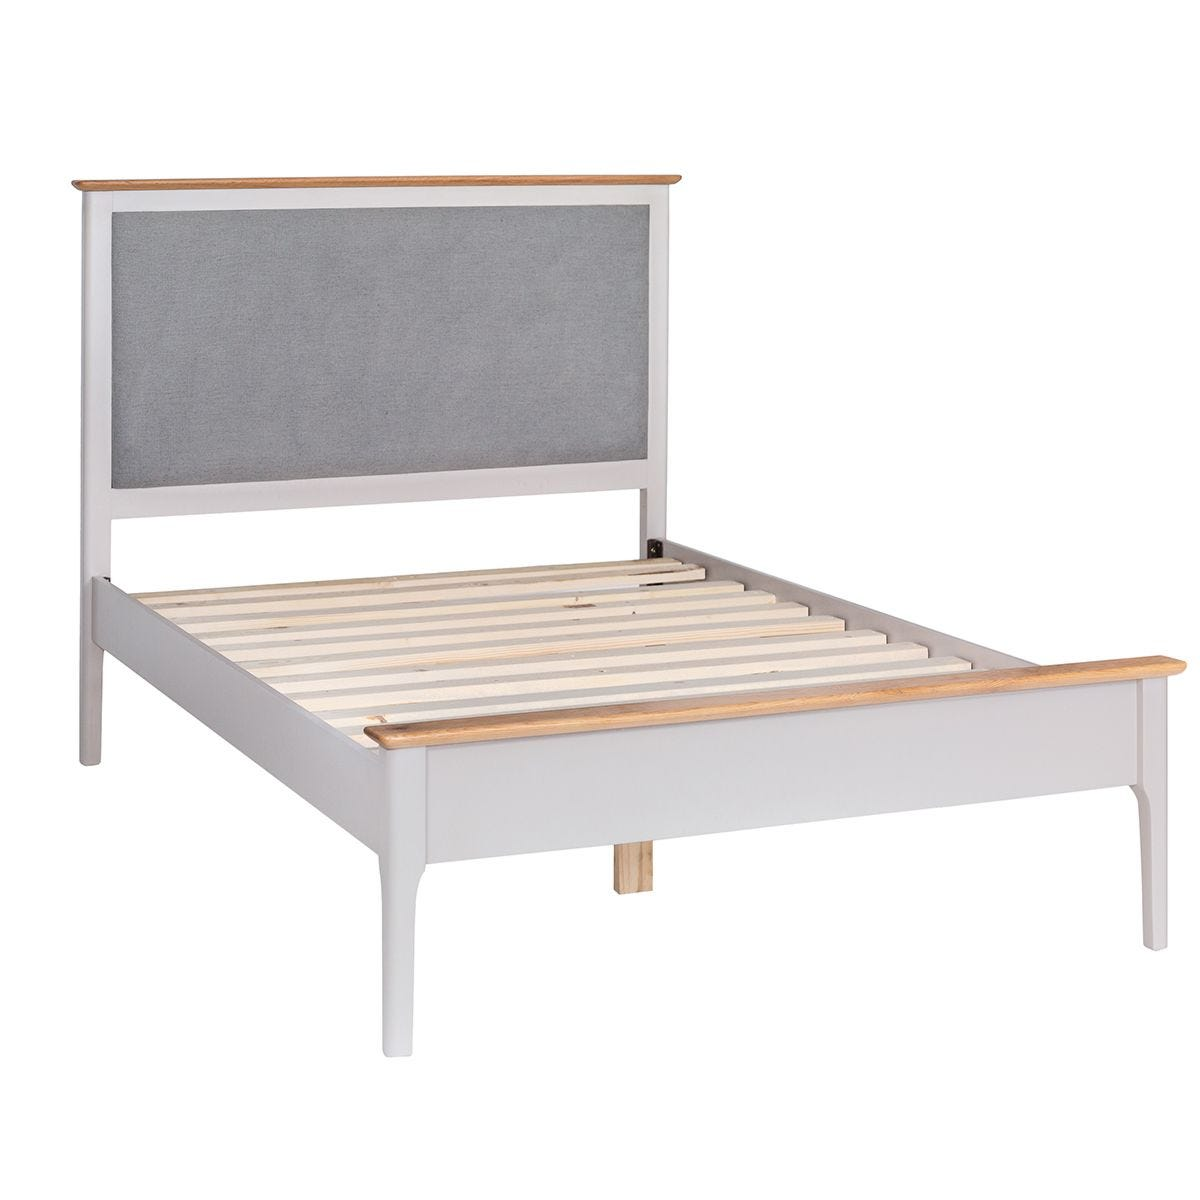 Notswood Single Bed Frame With Fabric Headboard